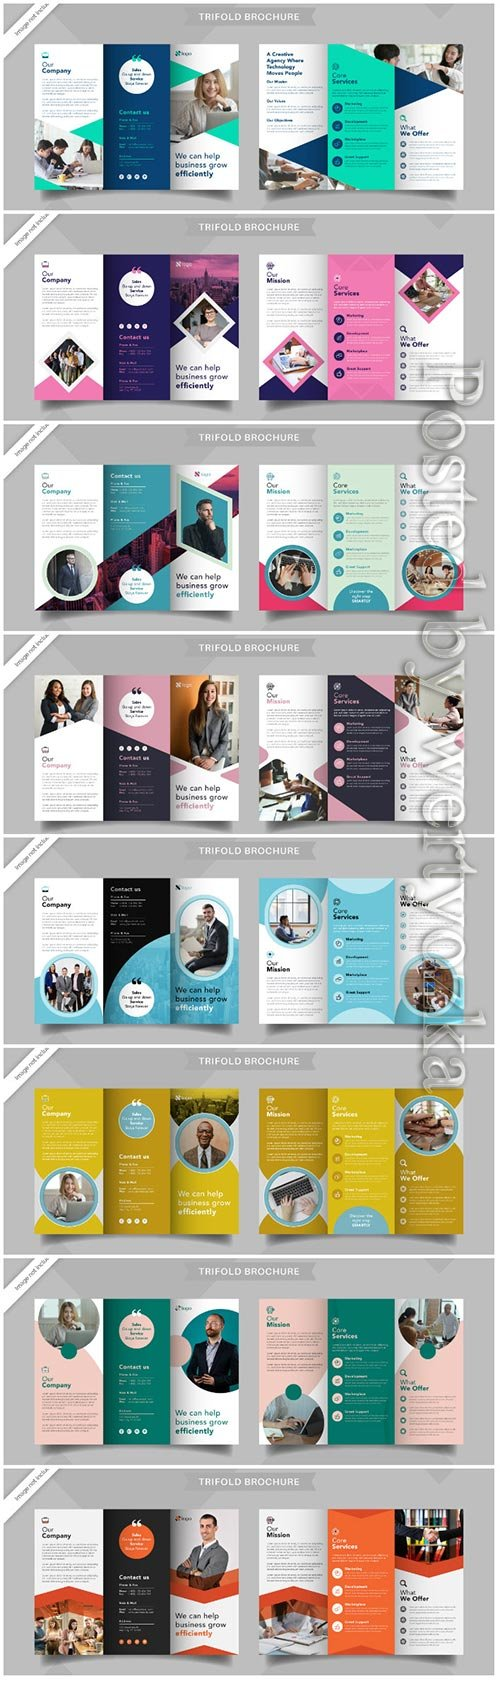 Corporate business trifold brochure vector template